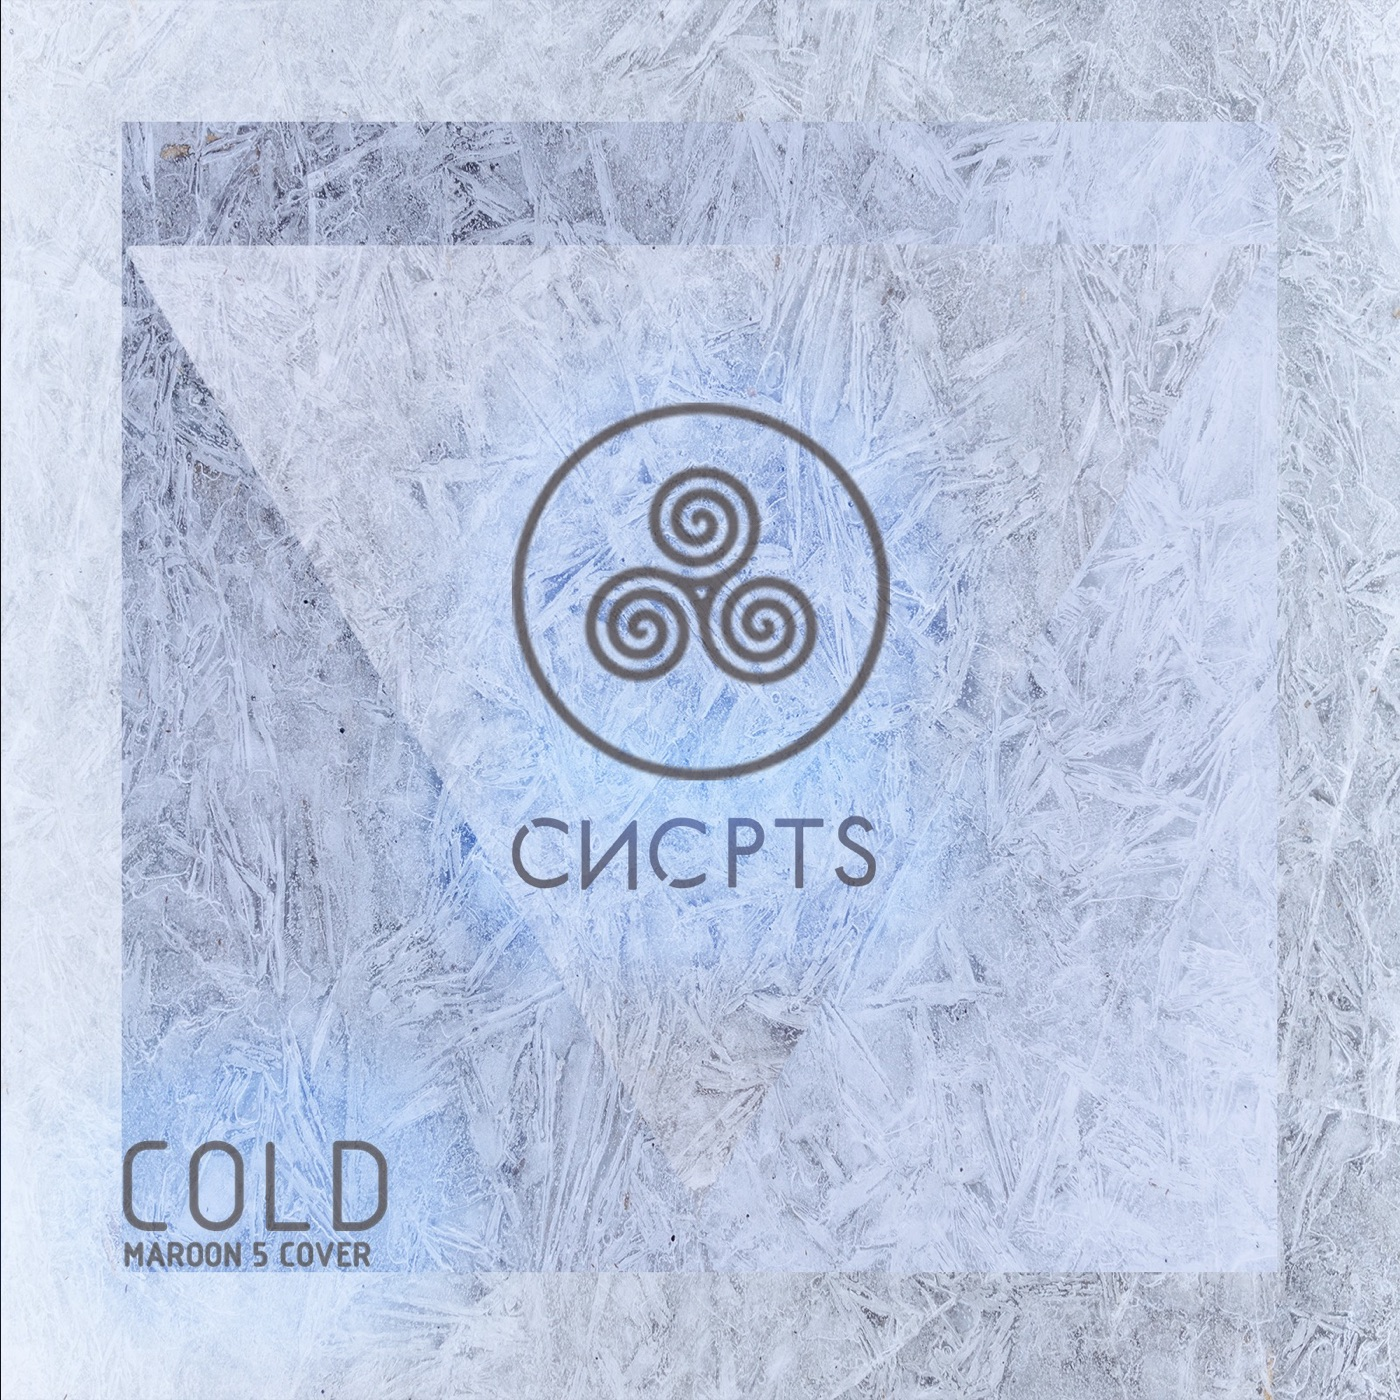 Concepts - Cold [single] (2017)